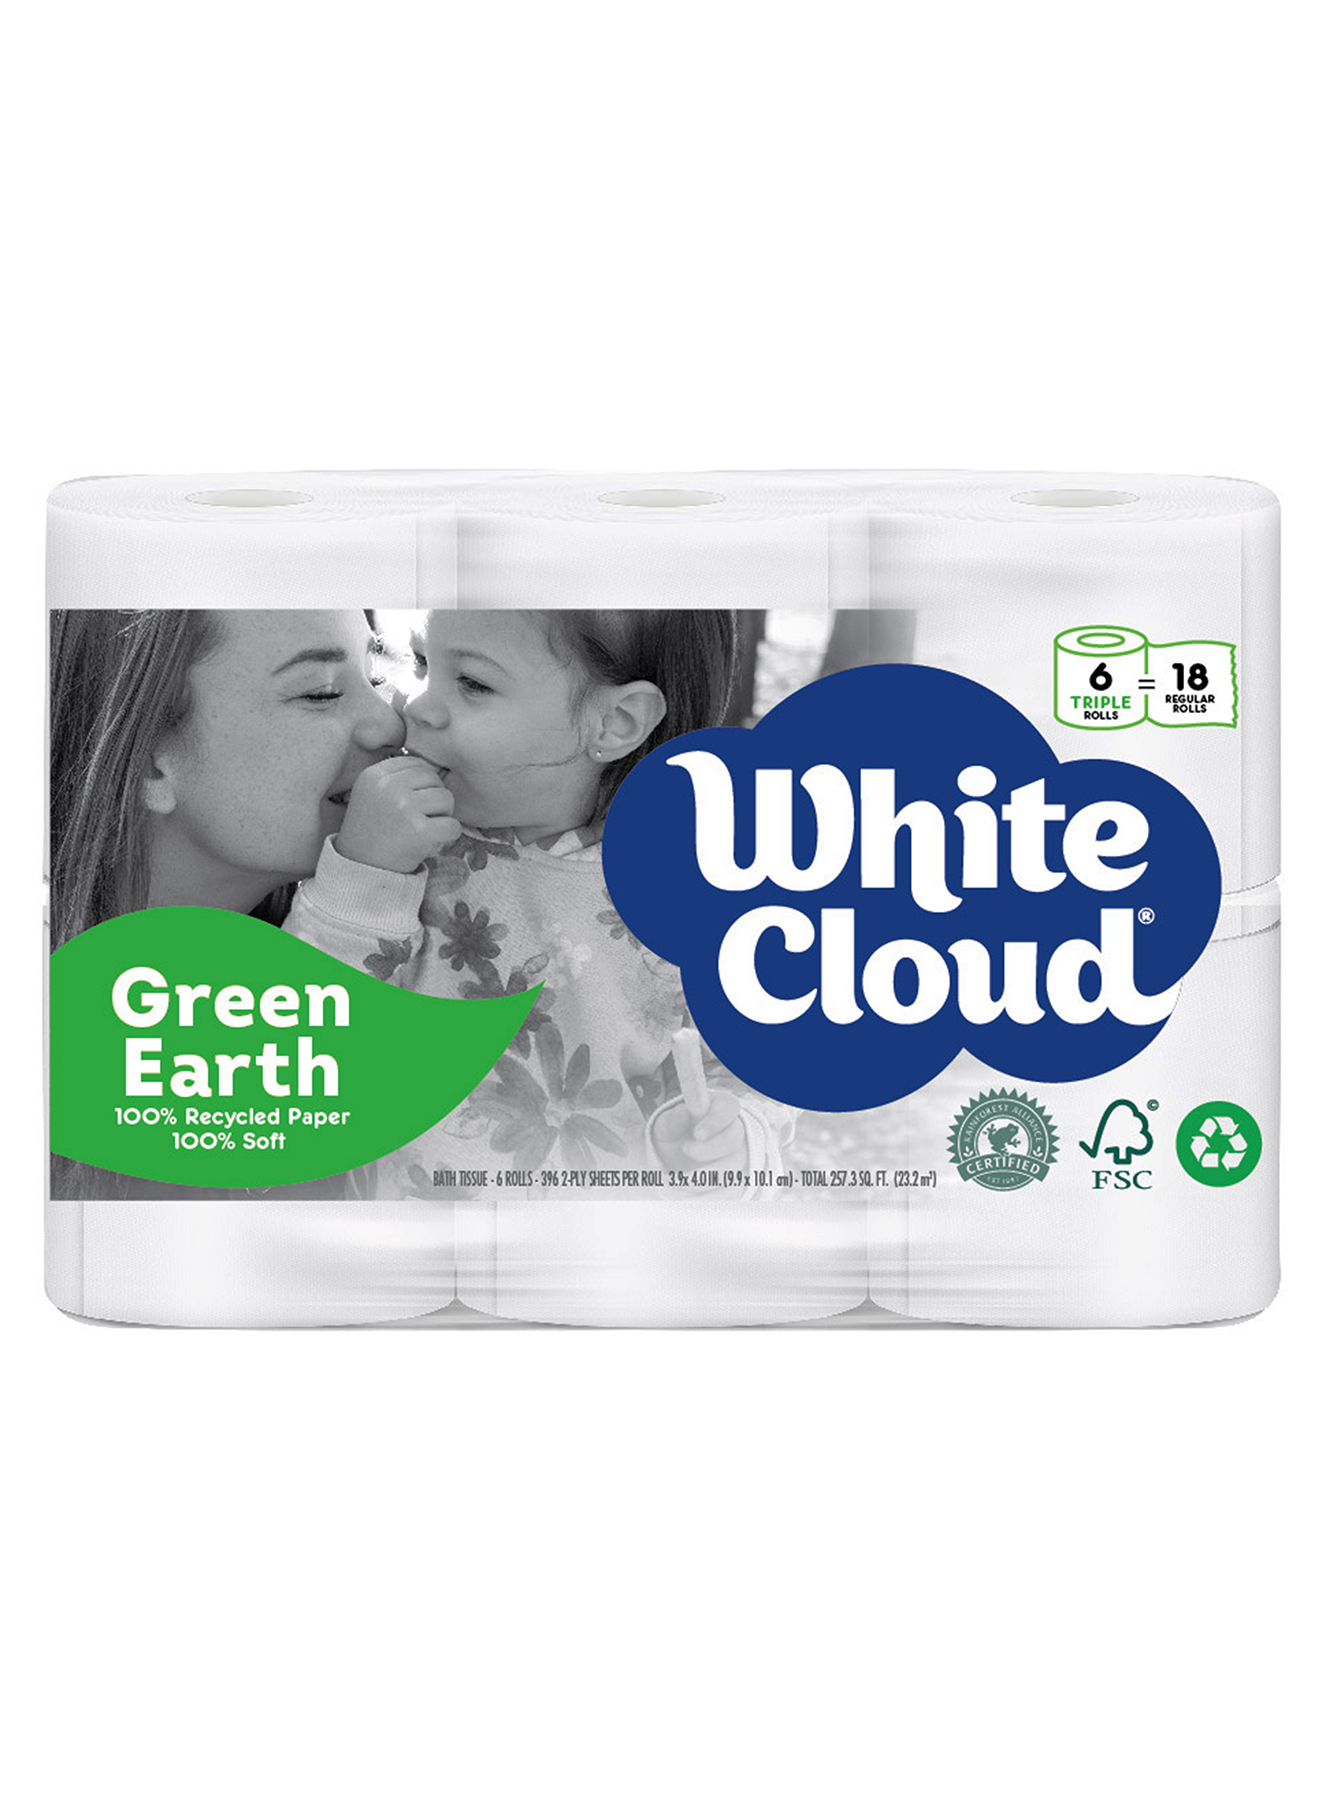 White Cloud GreenEarth